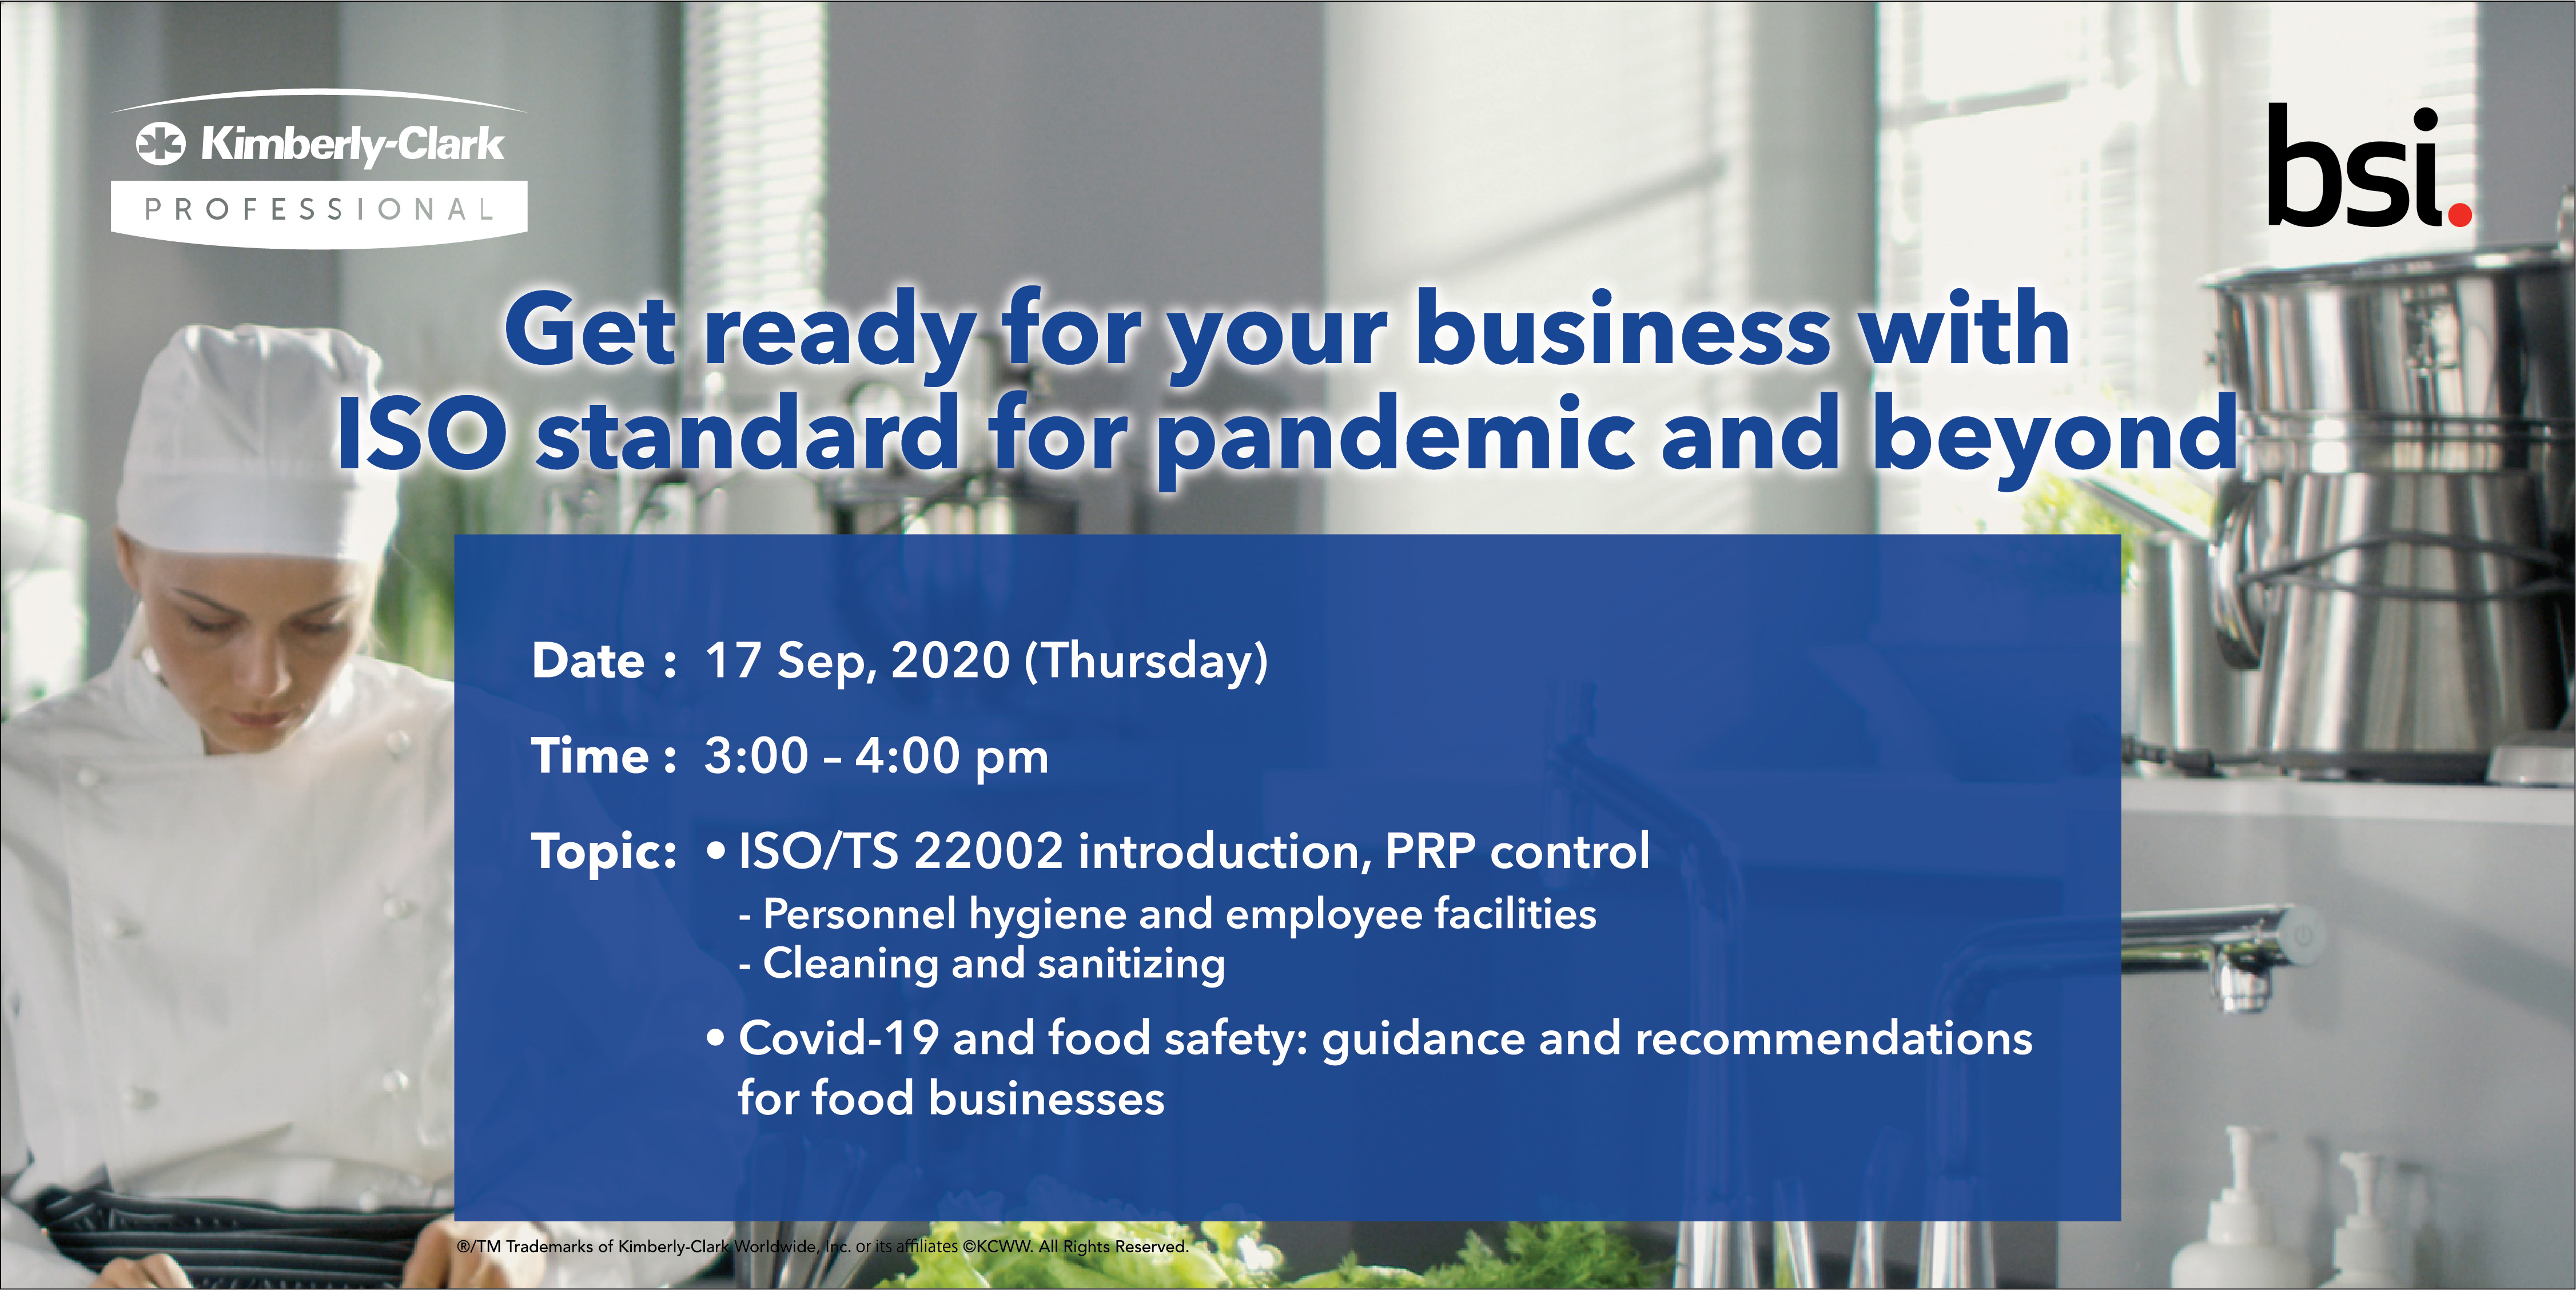 Get ready for your business with ISO standard for pandemic and beyond